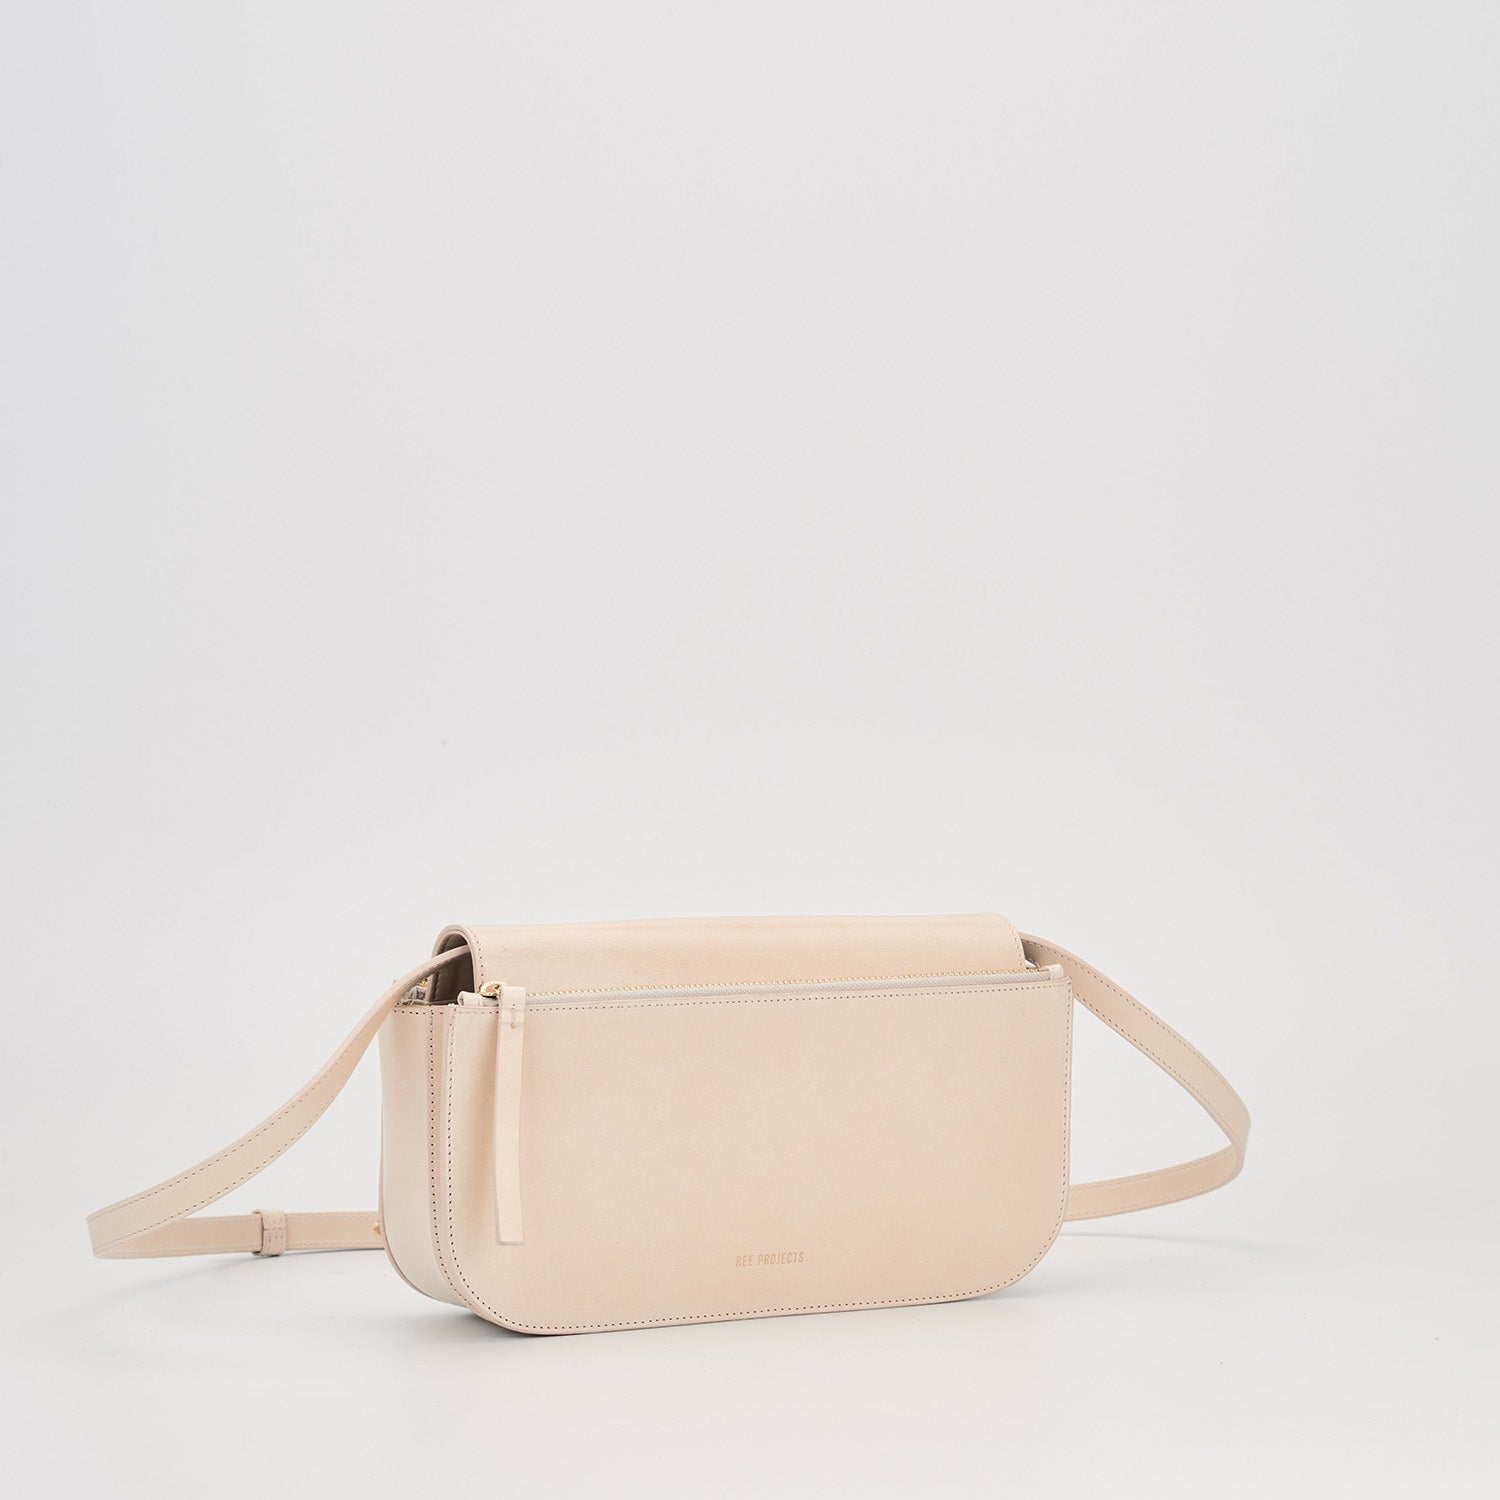 Bag Julie edition II - LIGHT NUDE